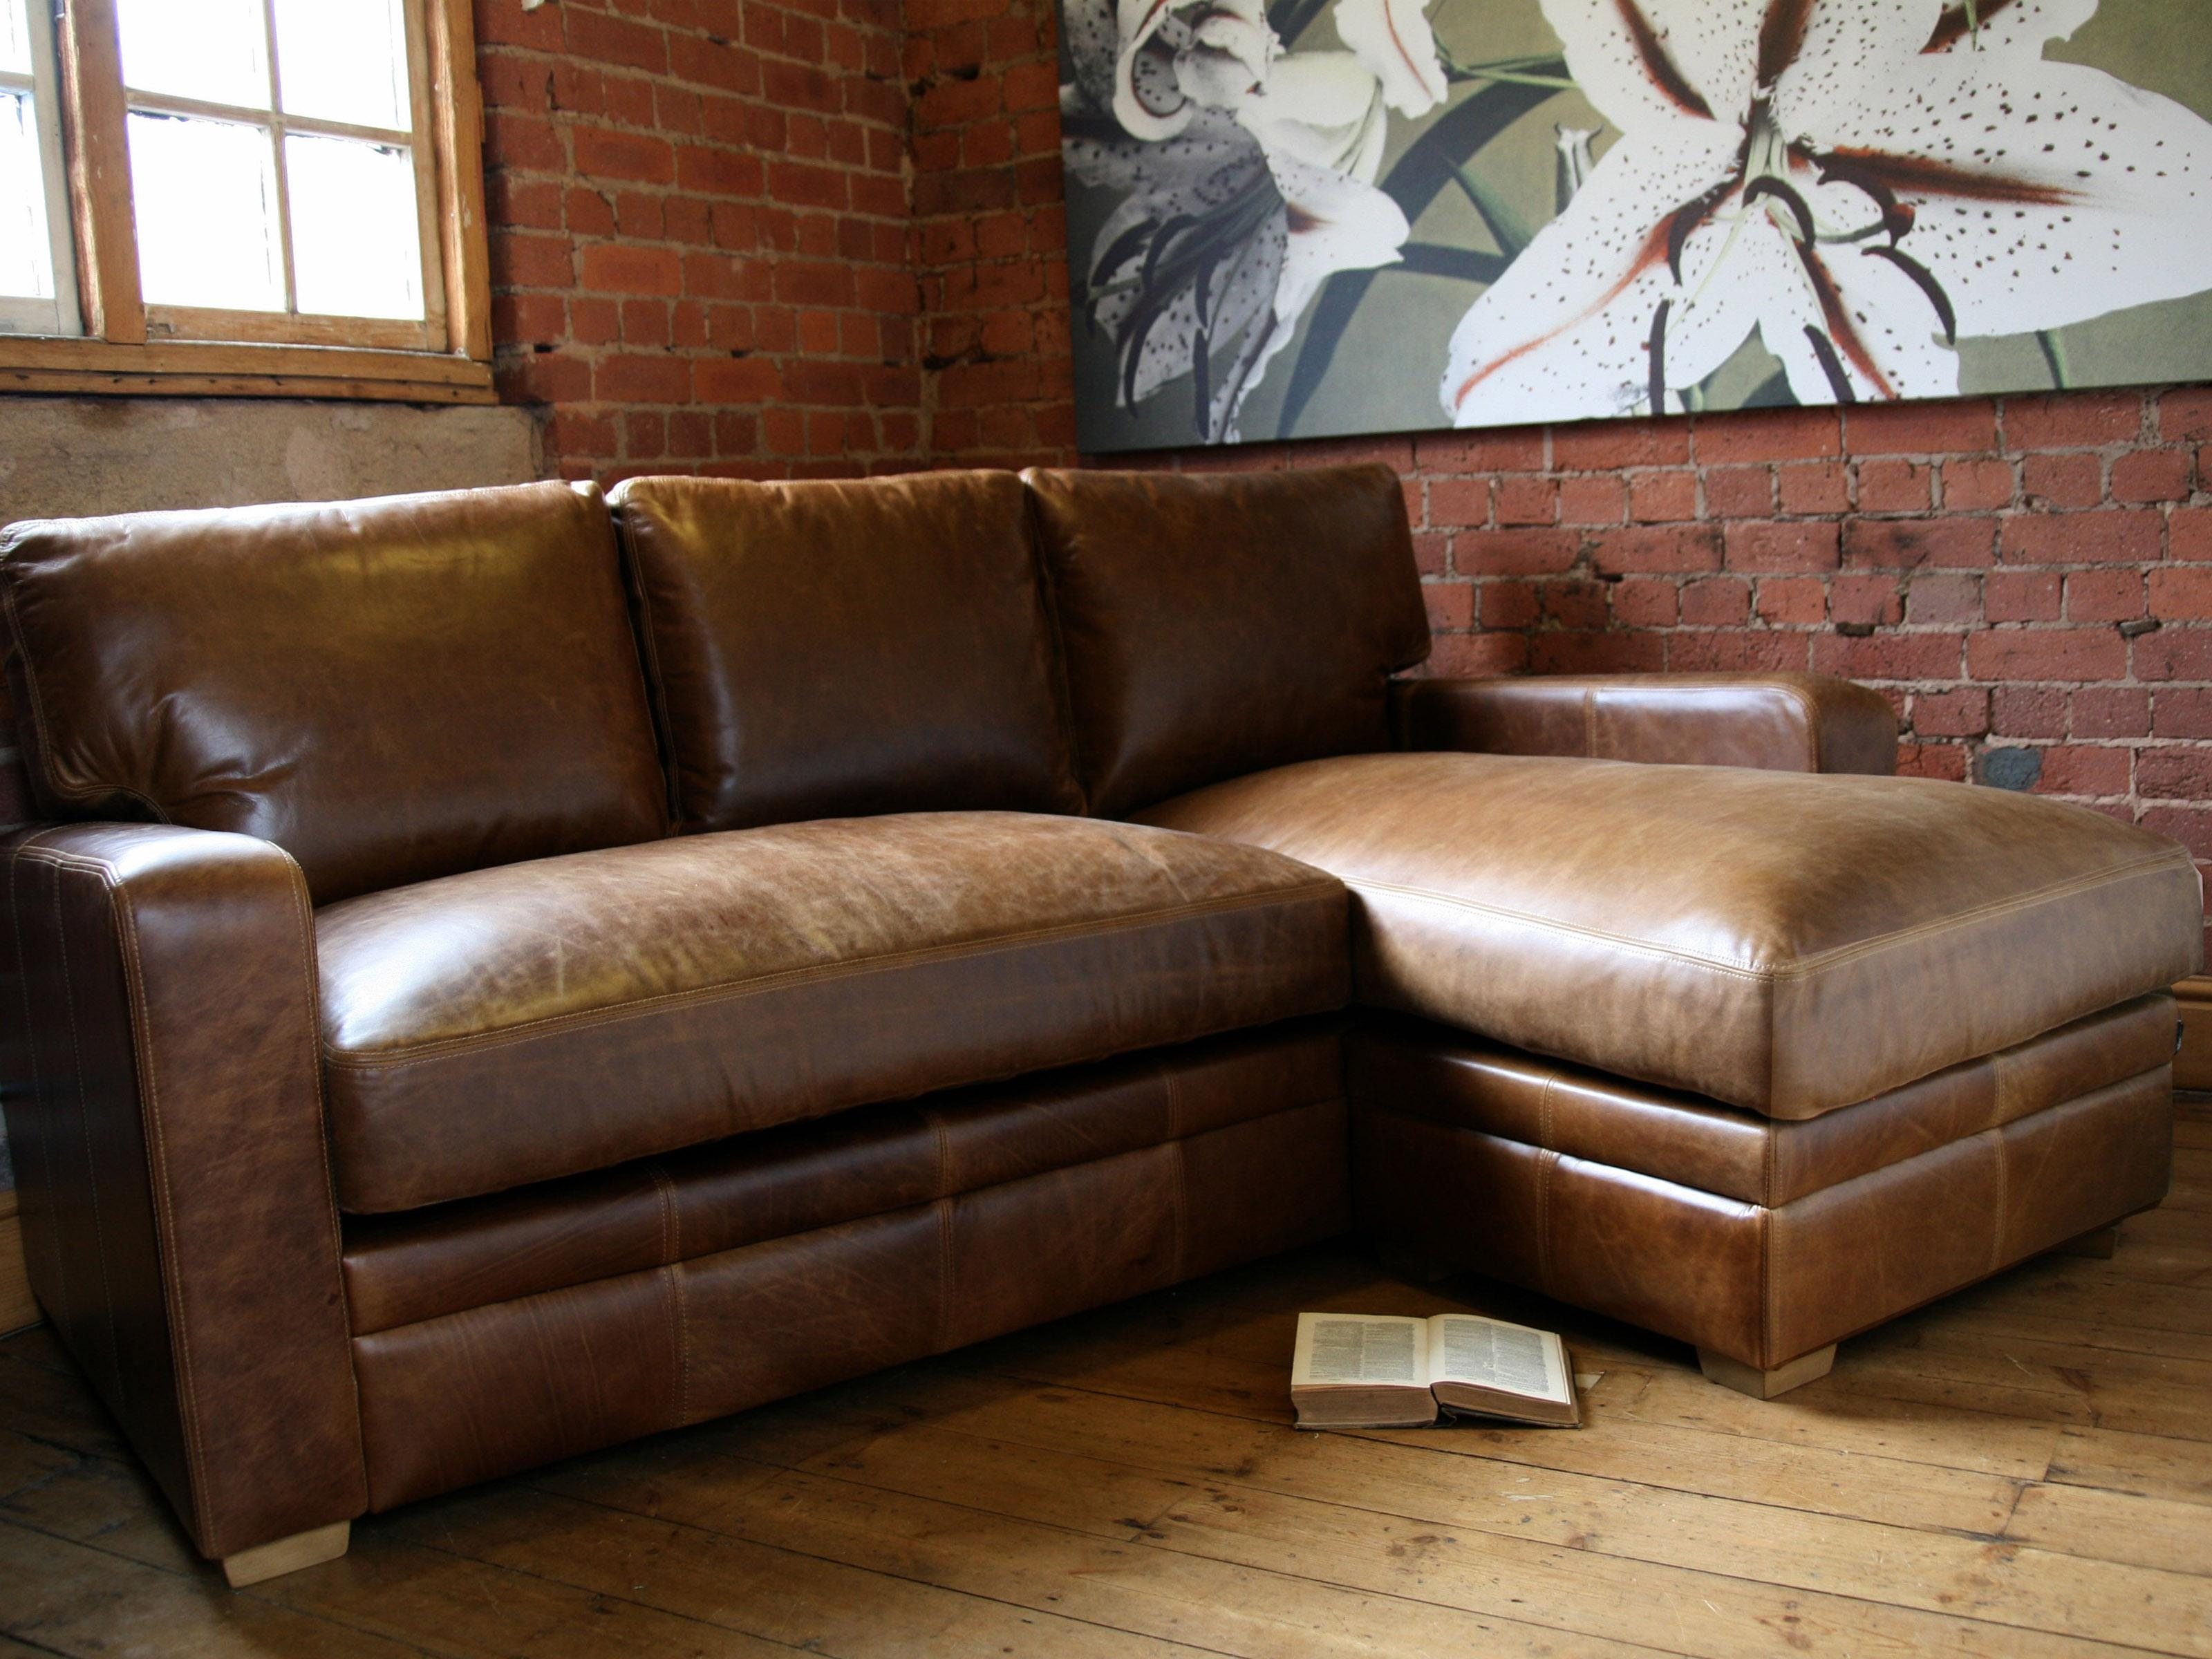 Sofas Center : Crate And Barrel Leather Davis Sofacrate Sleeper Regarding Davis Sofas (View 18 of 20)